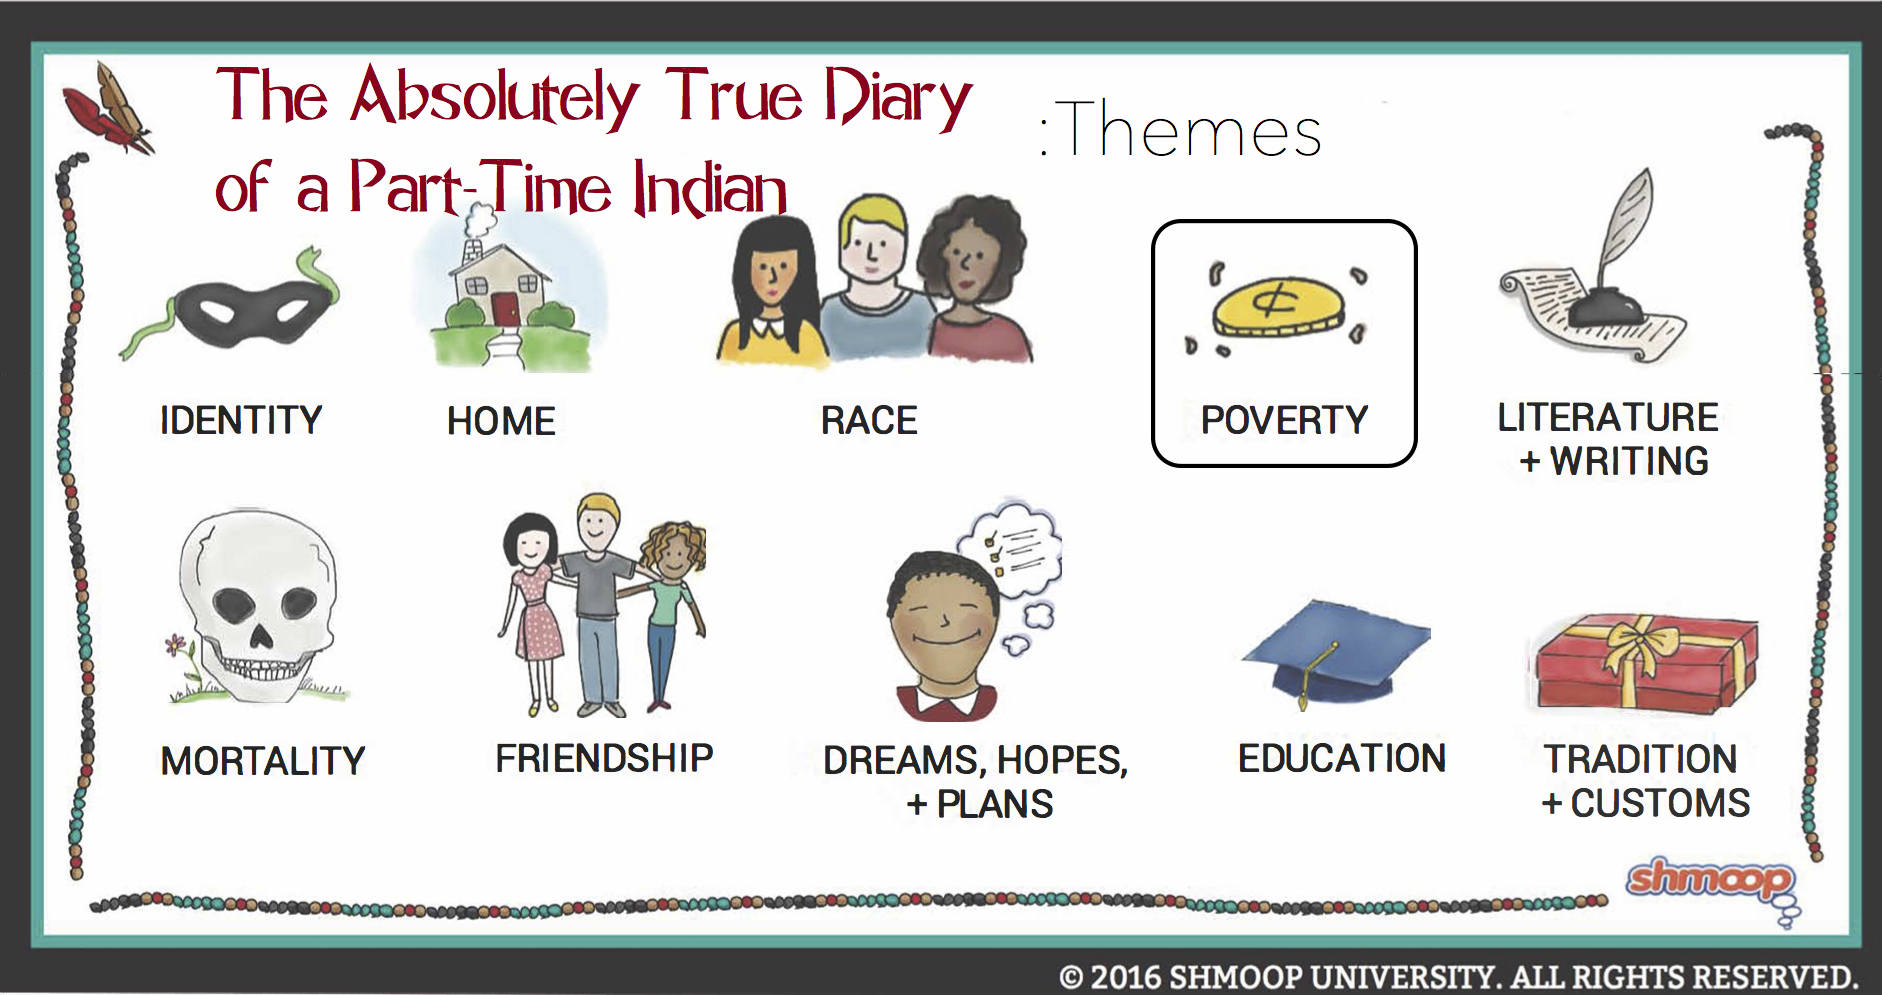 The Absolutely True Diary Of A Part-Time Indian Quotes The Absolutely True Diary Of A Parttime Indian Theme Of Poverty